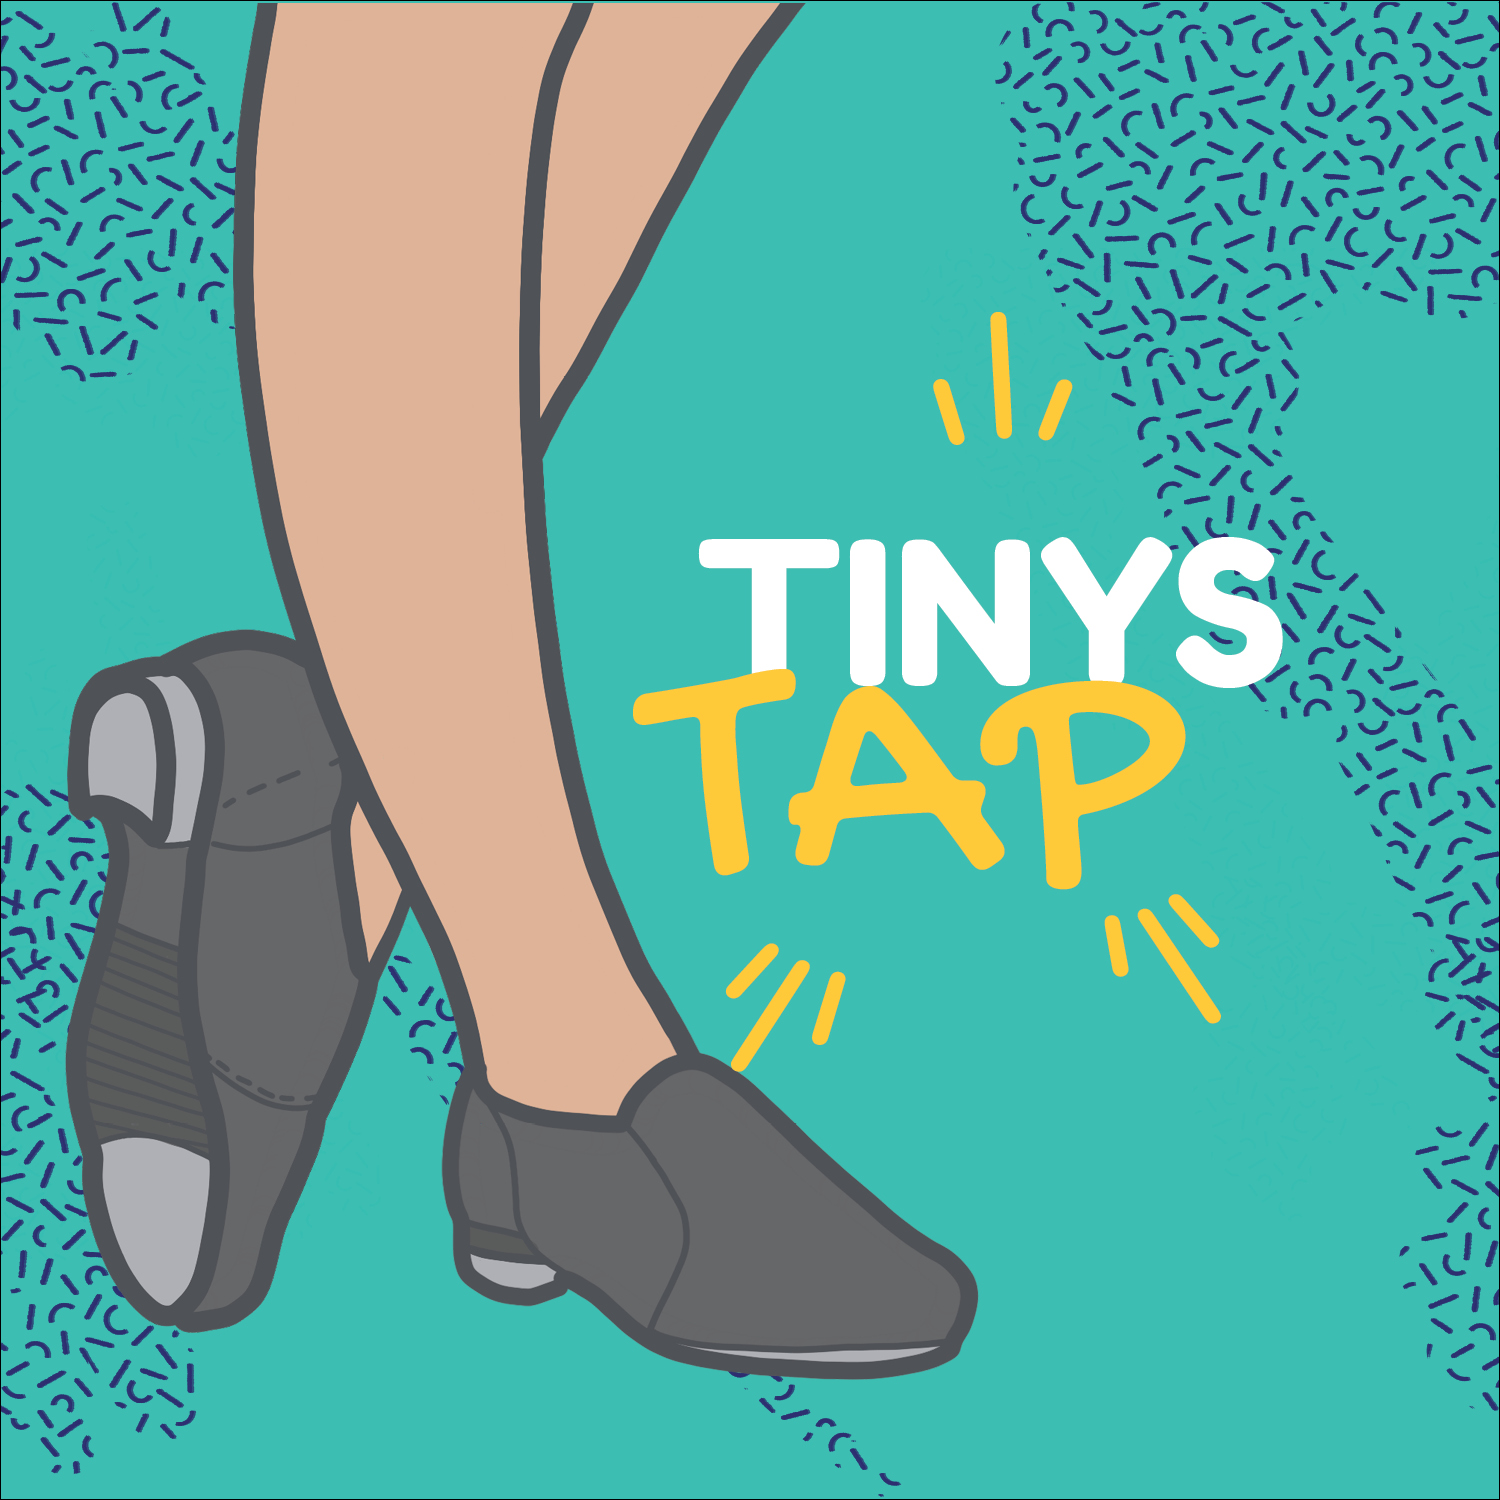 Tiny Tap - June 10th - June 28th Thursdays 6:45 to 7:30pmJuly 8th - July 26Thursdays 6:45 to 7:30pmAn upbeat introduction to tap! Tiny dancers will learn to find the beat while they make some sound with their feet learning basic tap technique.Price $41